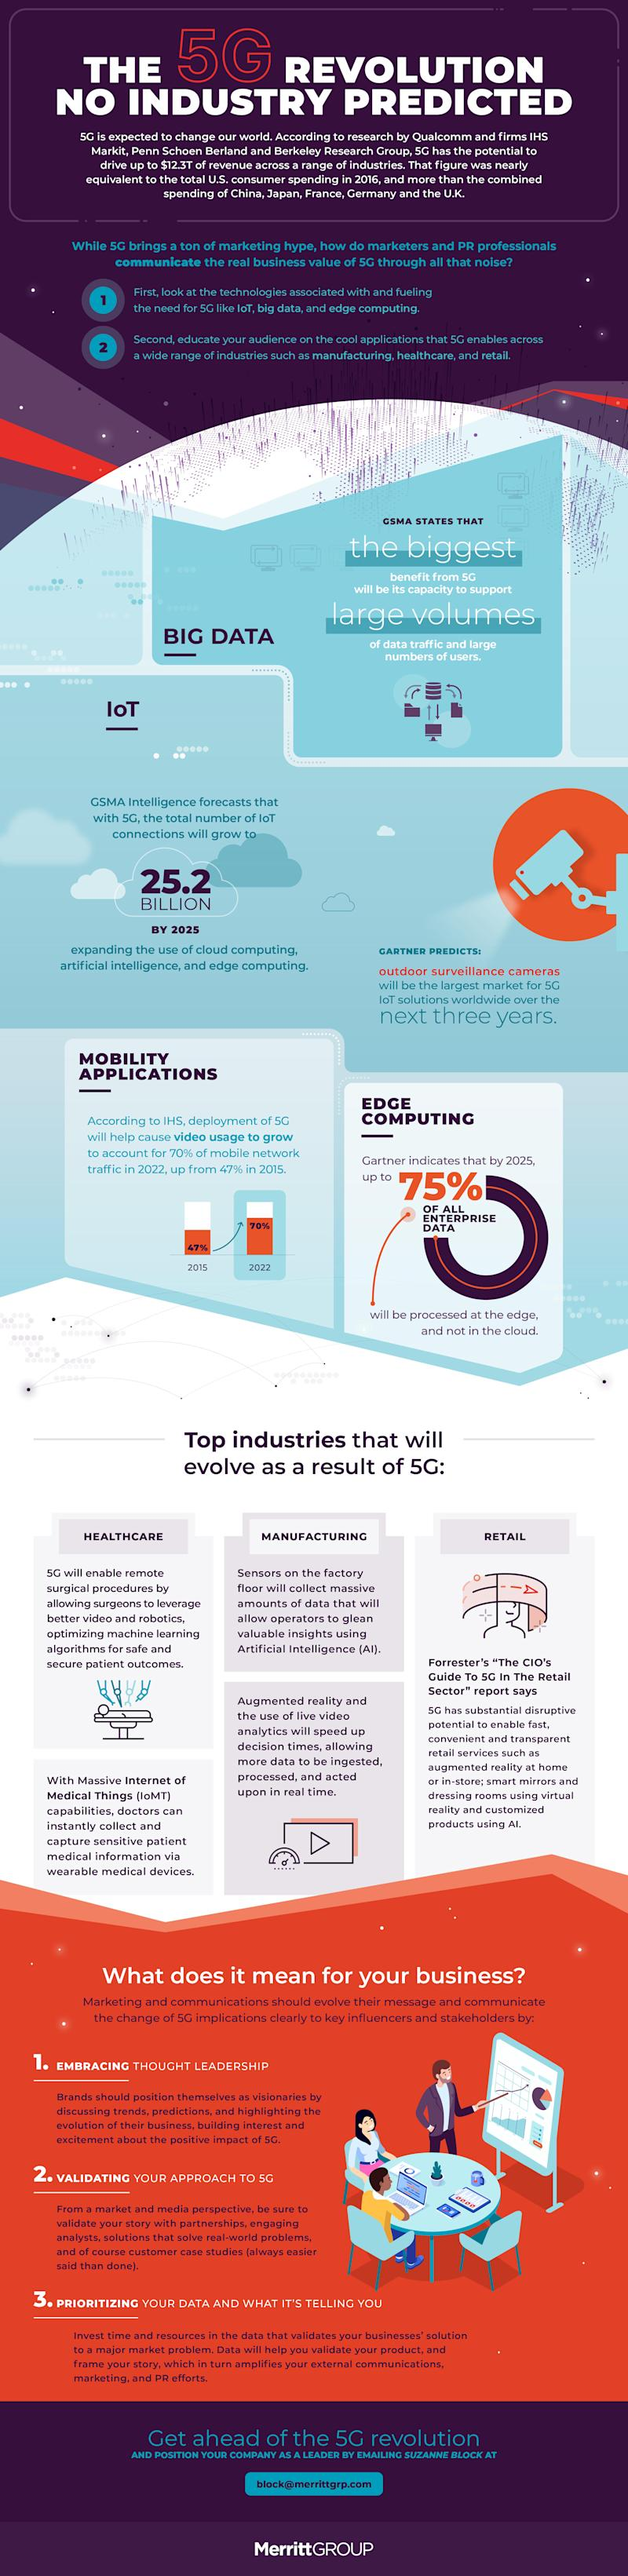 The Truth About How 5G Will Impact Your Industry